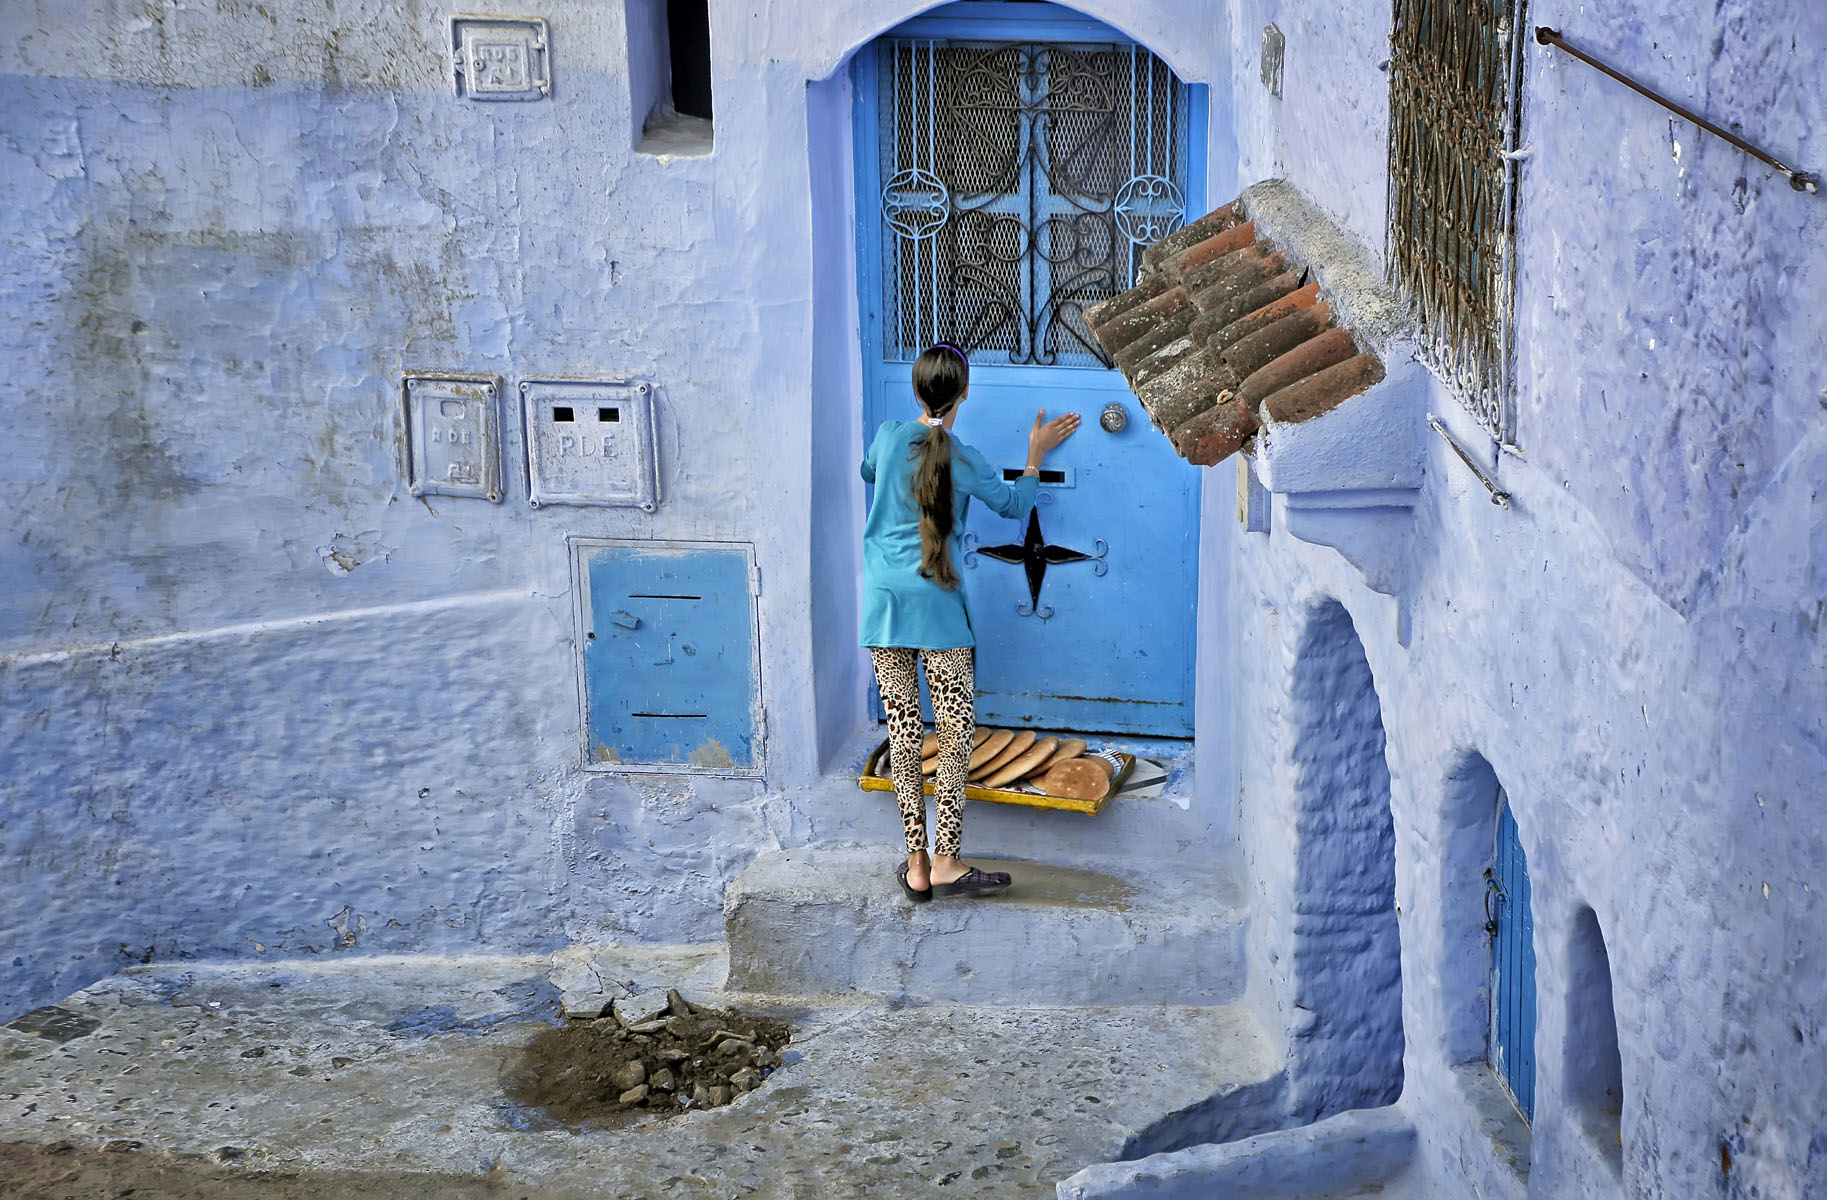 """Chefchaouen, Morocco, November 2017   Archival pigment print  11.25"""" x 16.75""""  $300  Click image to enlarge   Inquire."""